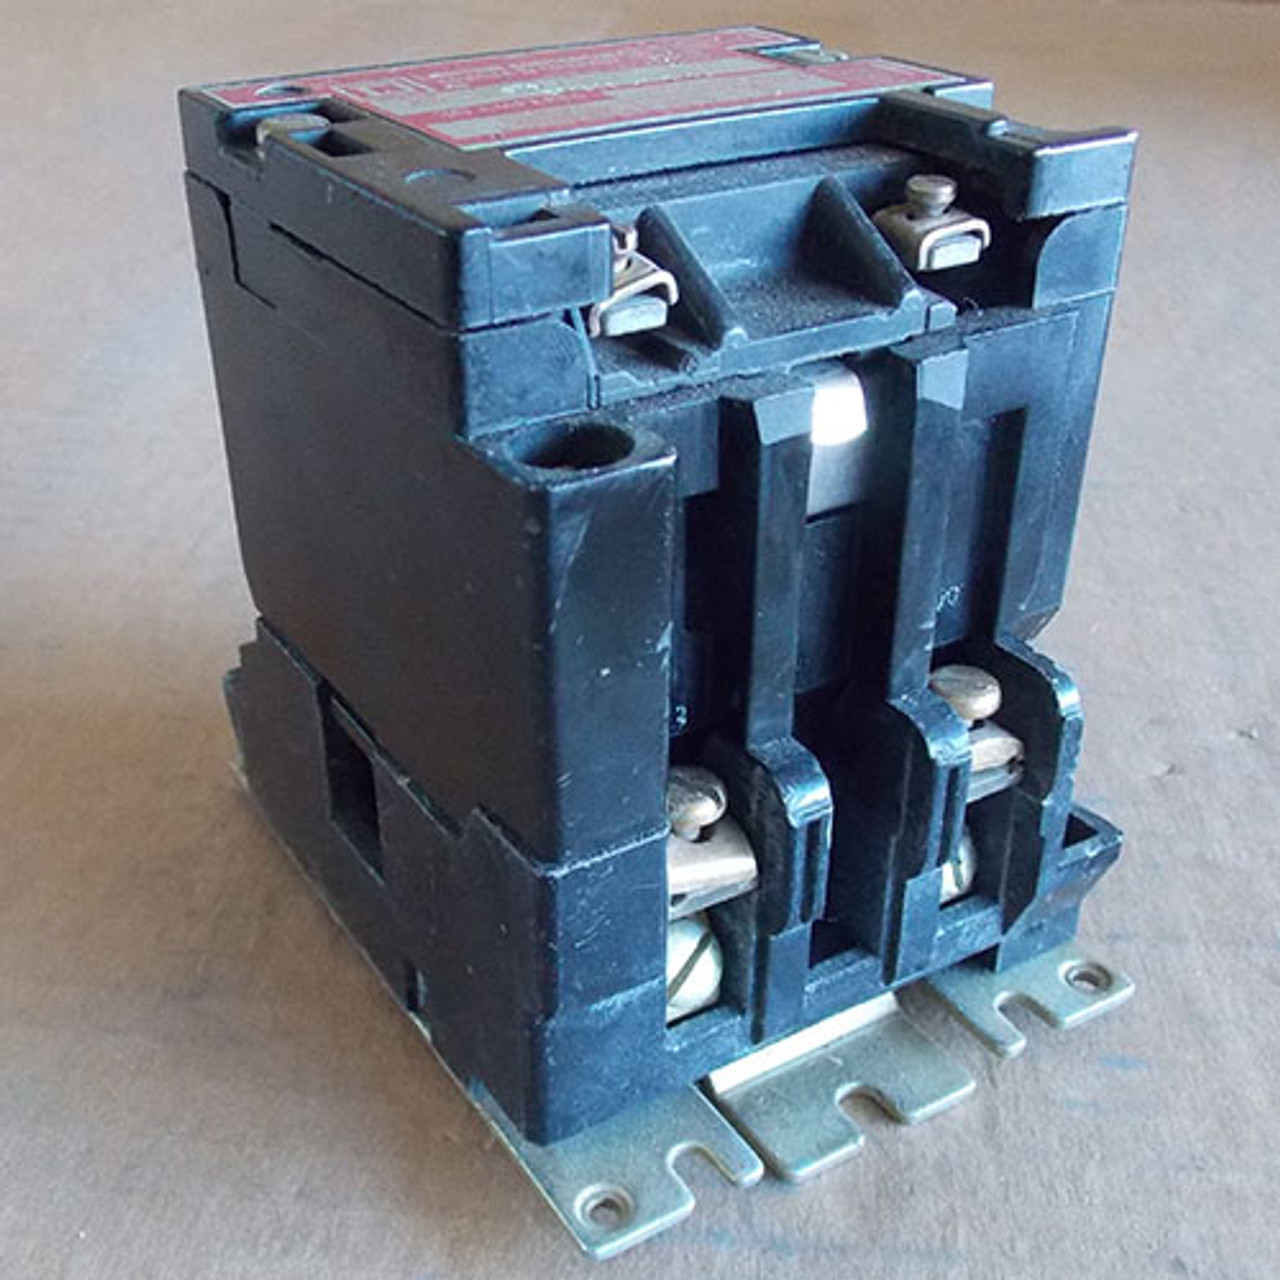 Square D 8903 SMG1 2 Pole 30 Amp Lighting Contactor 120V Coil - Used